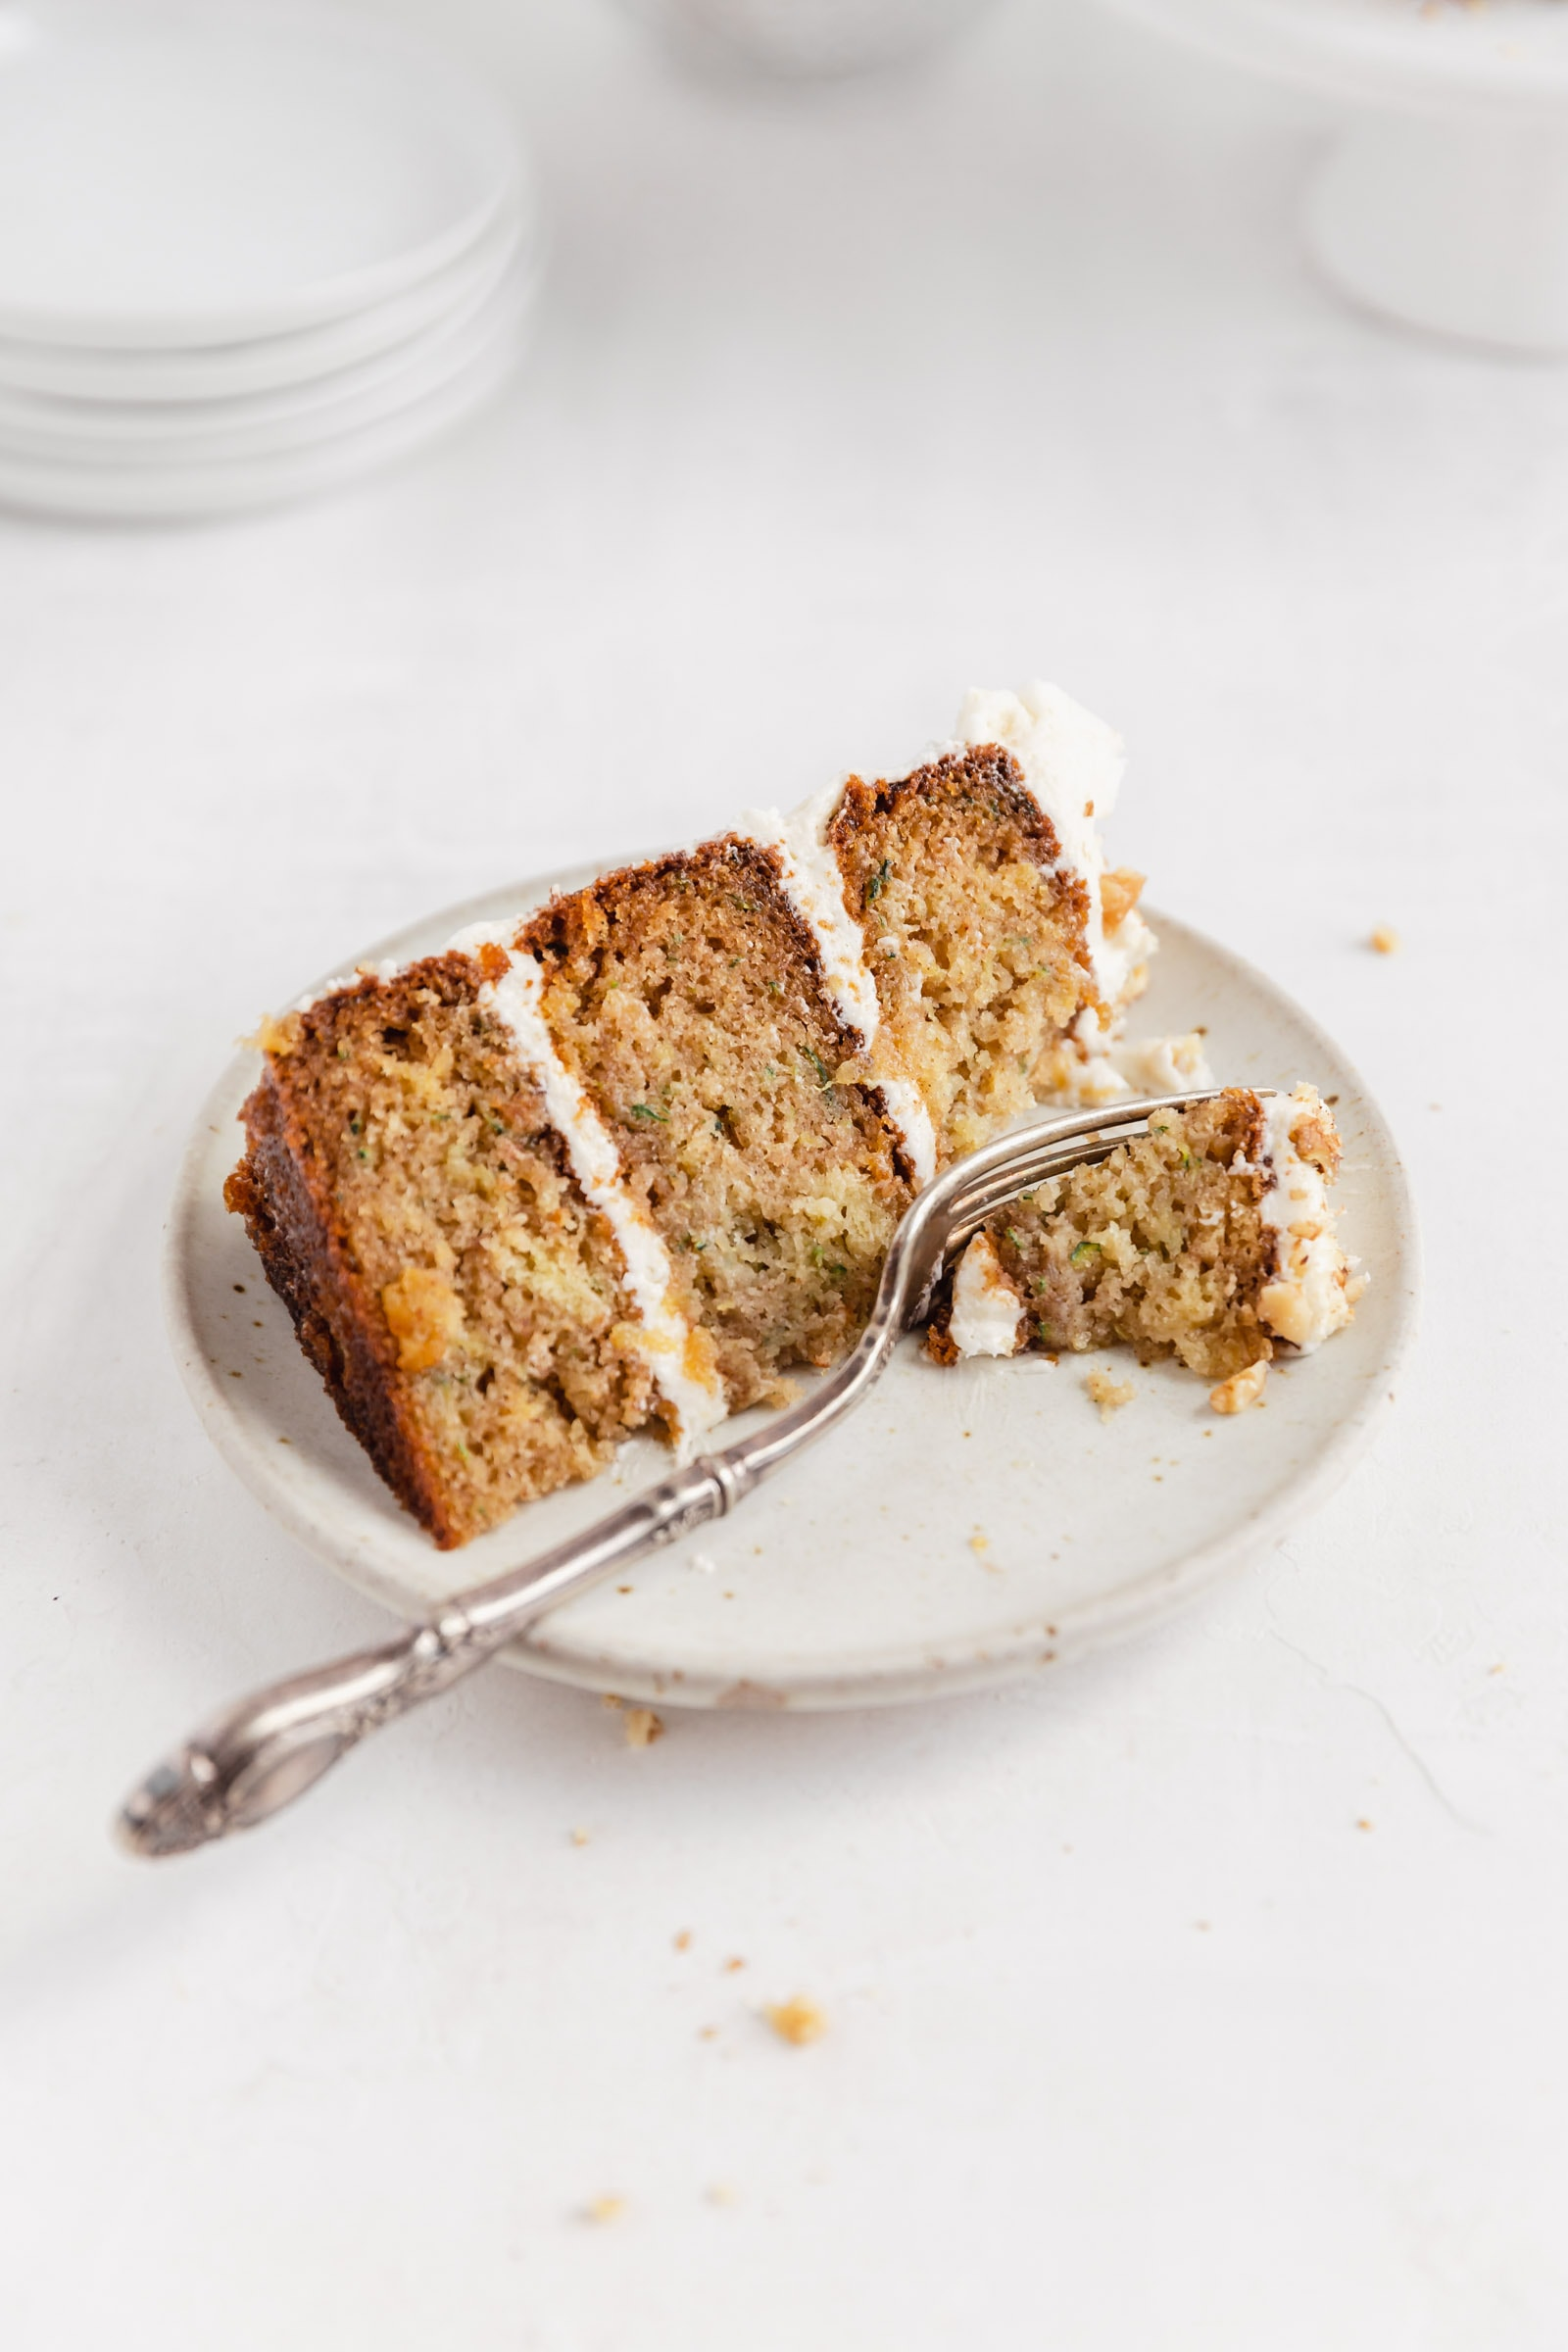 slice of zucchini cake with cream cheese frosting